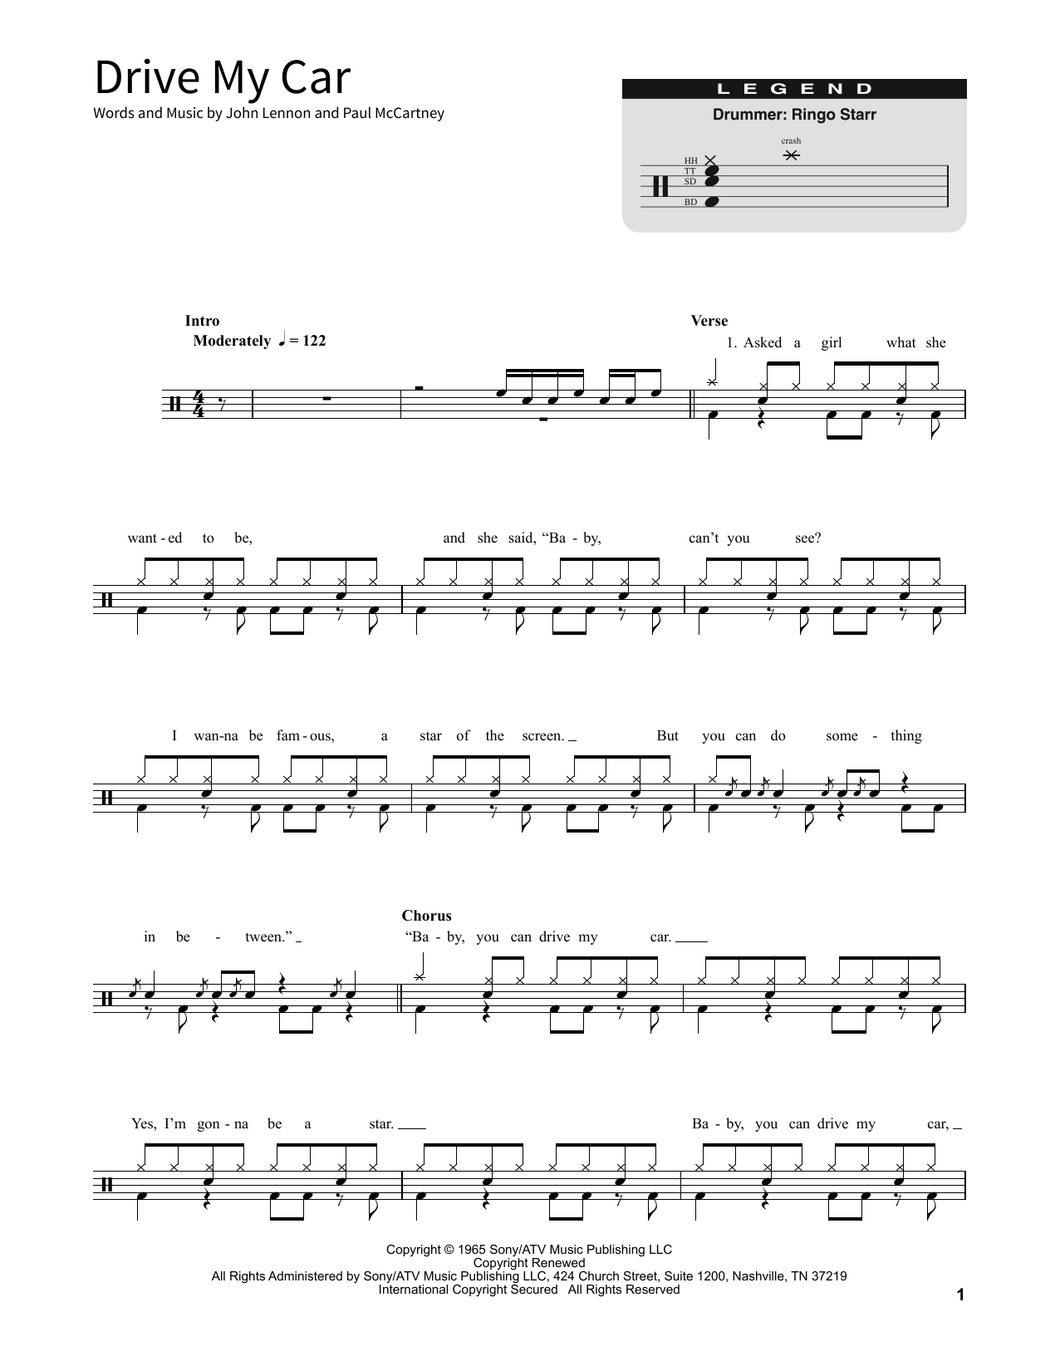 Drive My Car - The Beatles - Full Drum Transcription / Drum Sheet Music - SheetMusicDirect SORD